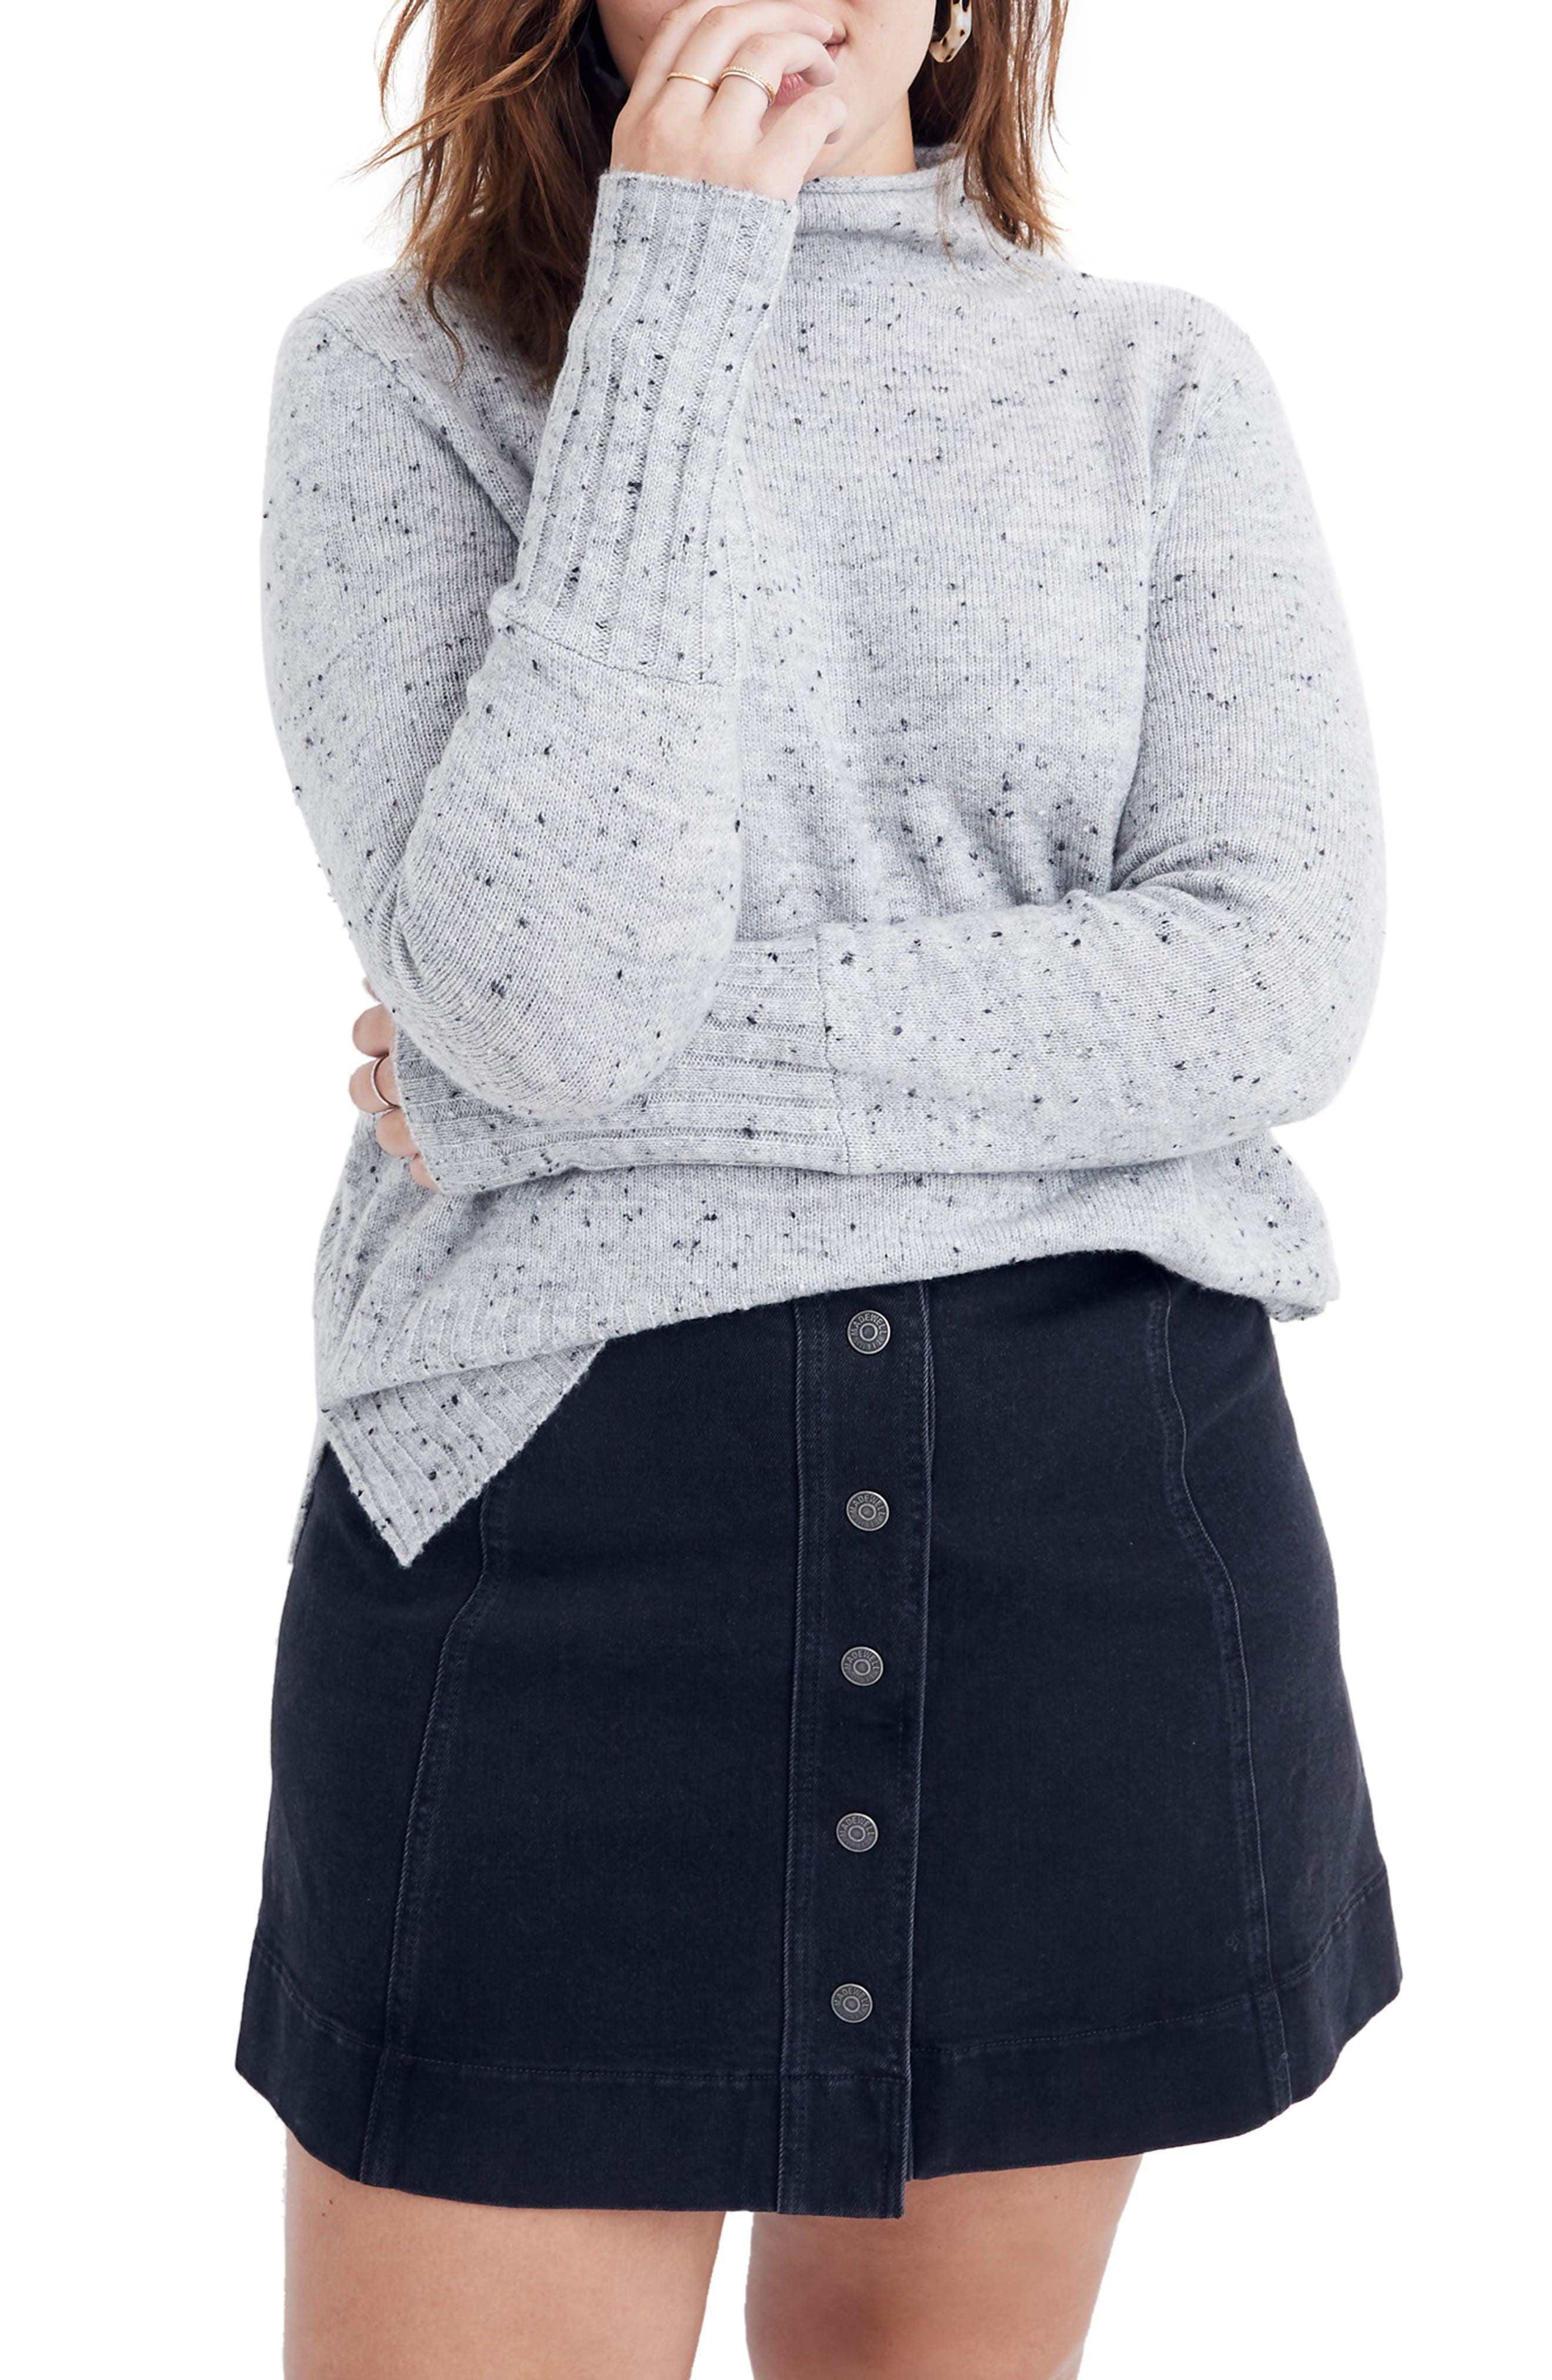 Image of Madewell Donegal Inland Turtleneck Sweater